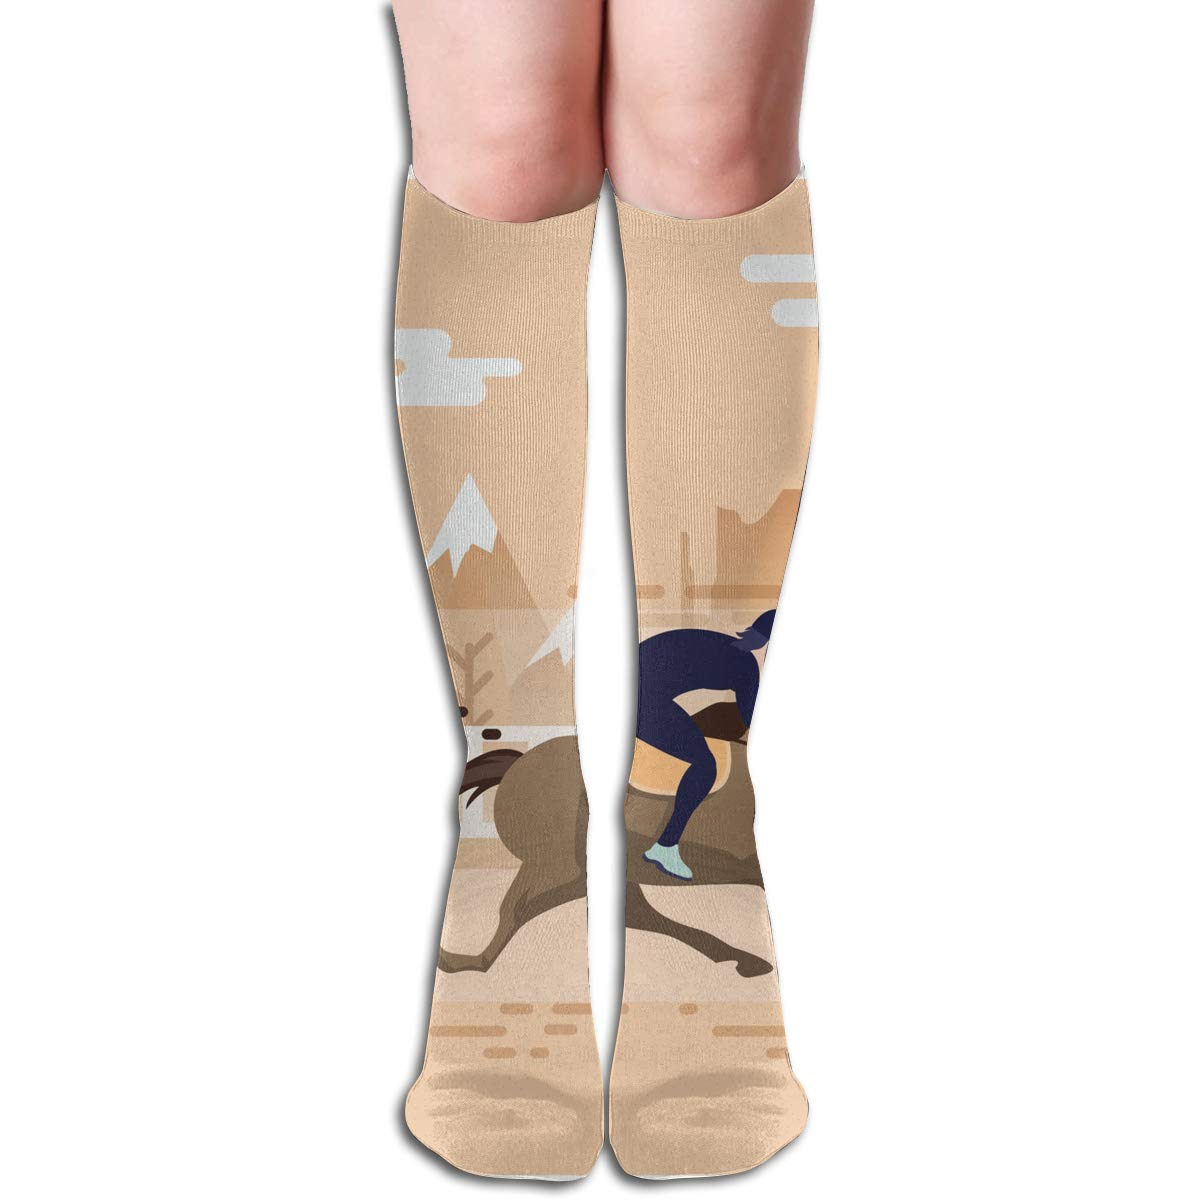 Girls Socks Over Knee Man Riding Horse Winter Custom Personalized For Party